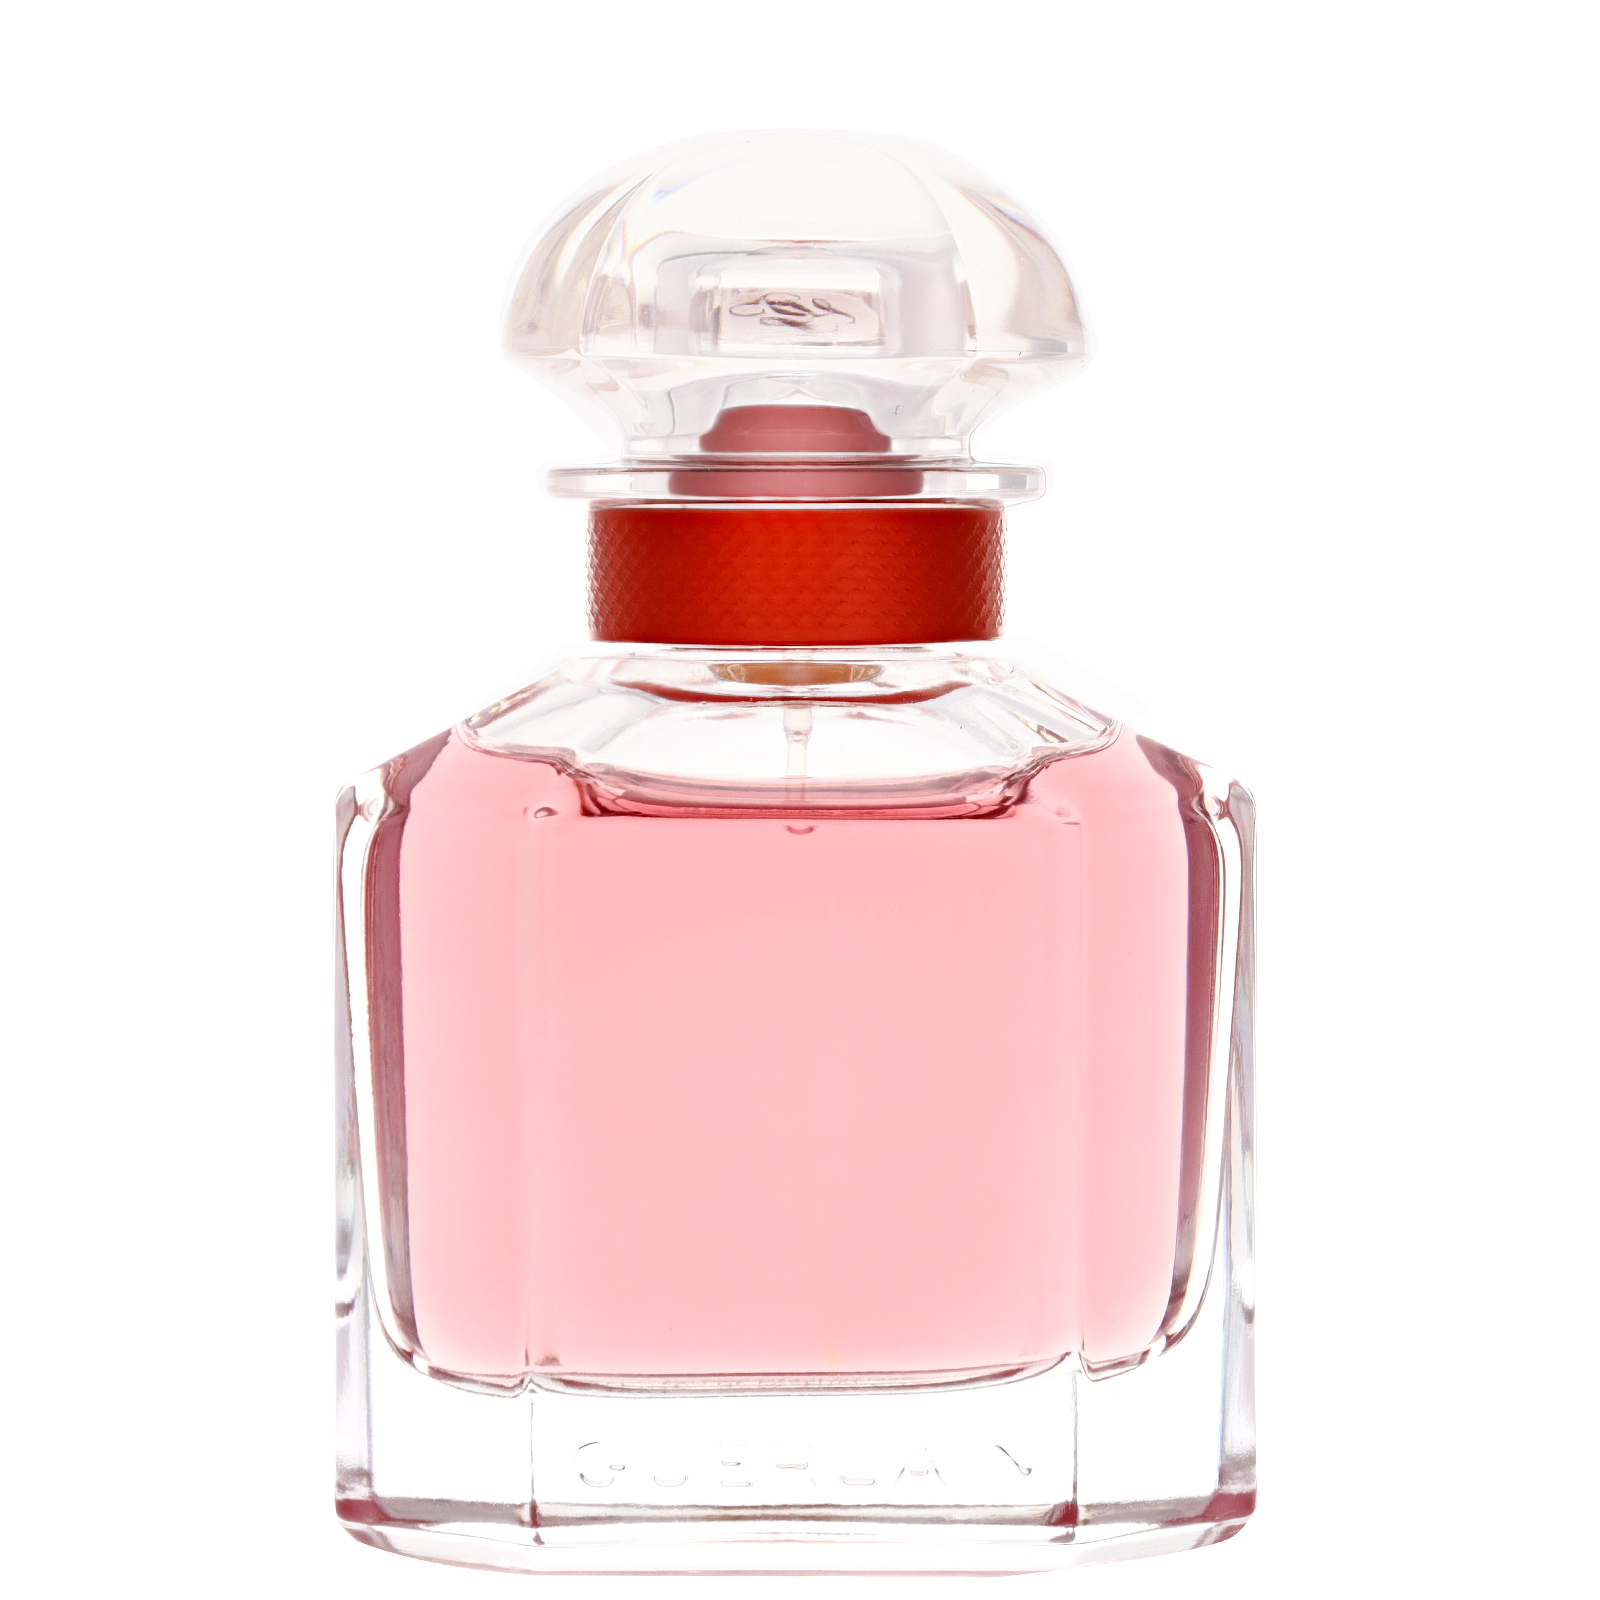 Guerlain Mon Guerlain Eau de Parfum Intense Spray 50ml / 1.6 fl.oz.